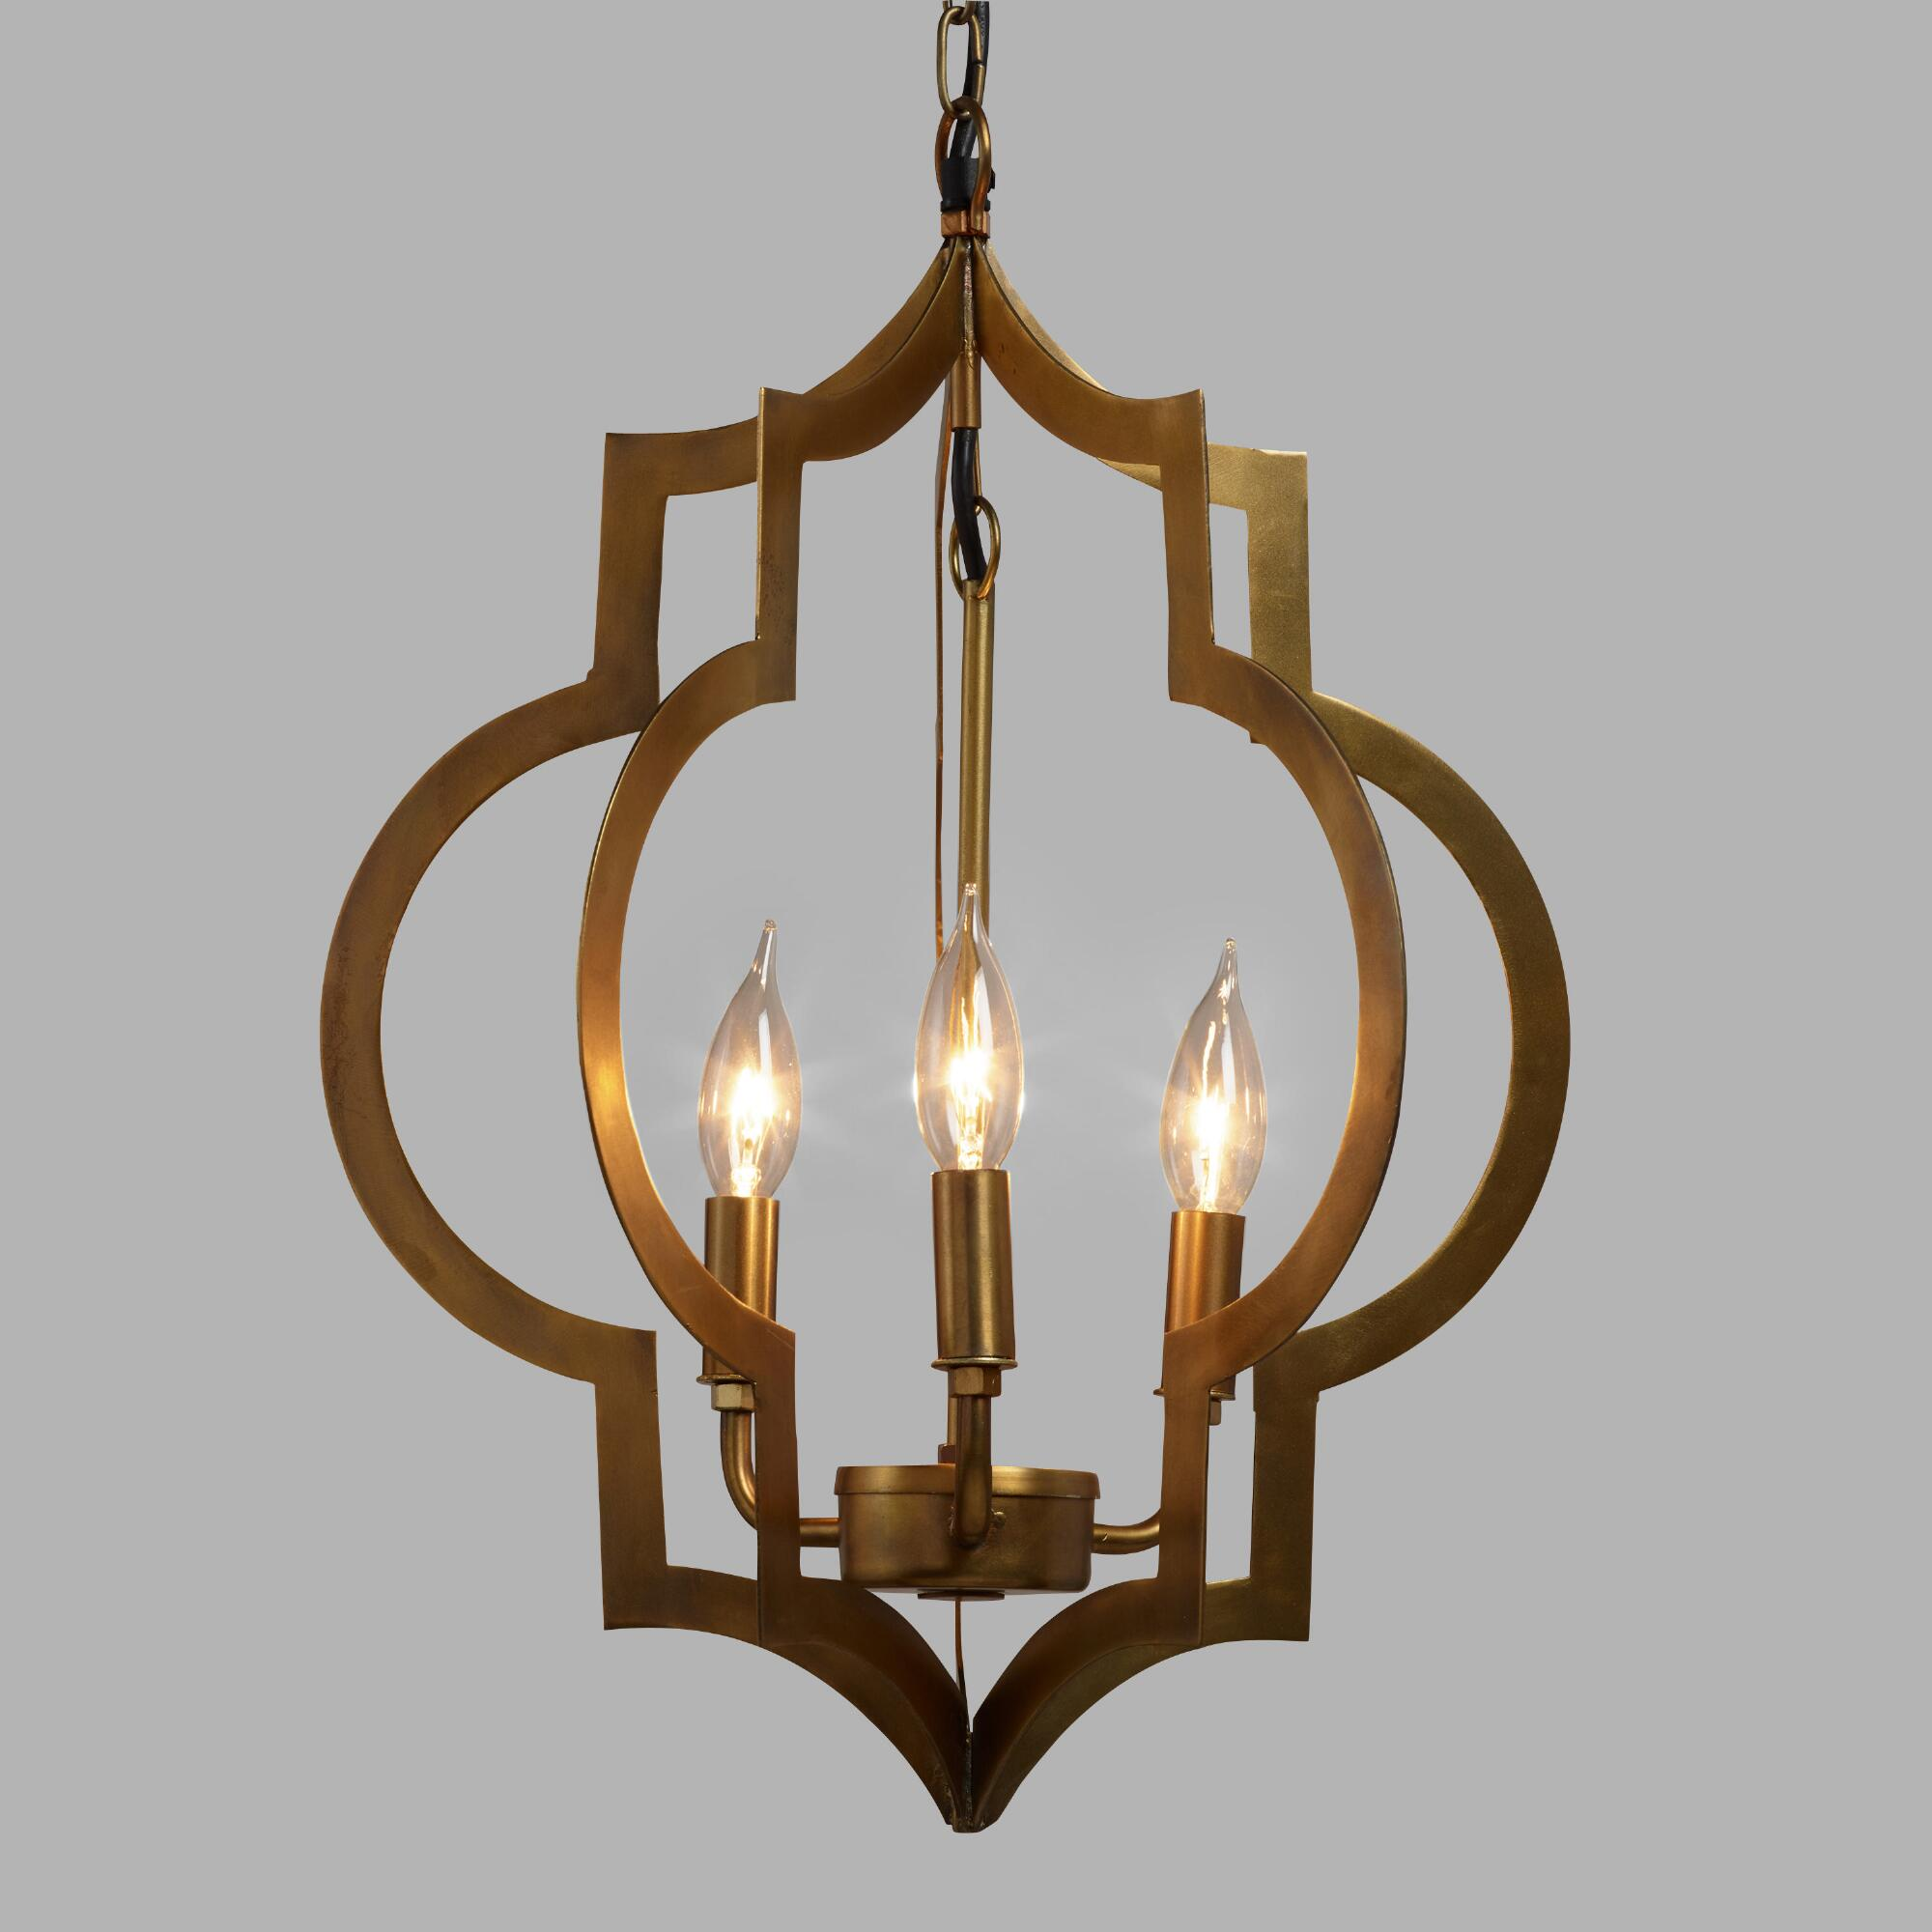 Gold quatrefoil 3 light pendant lamp world market - Lights and chandeliers ...